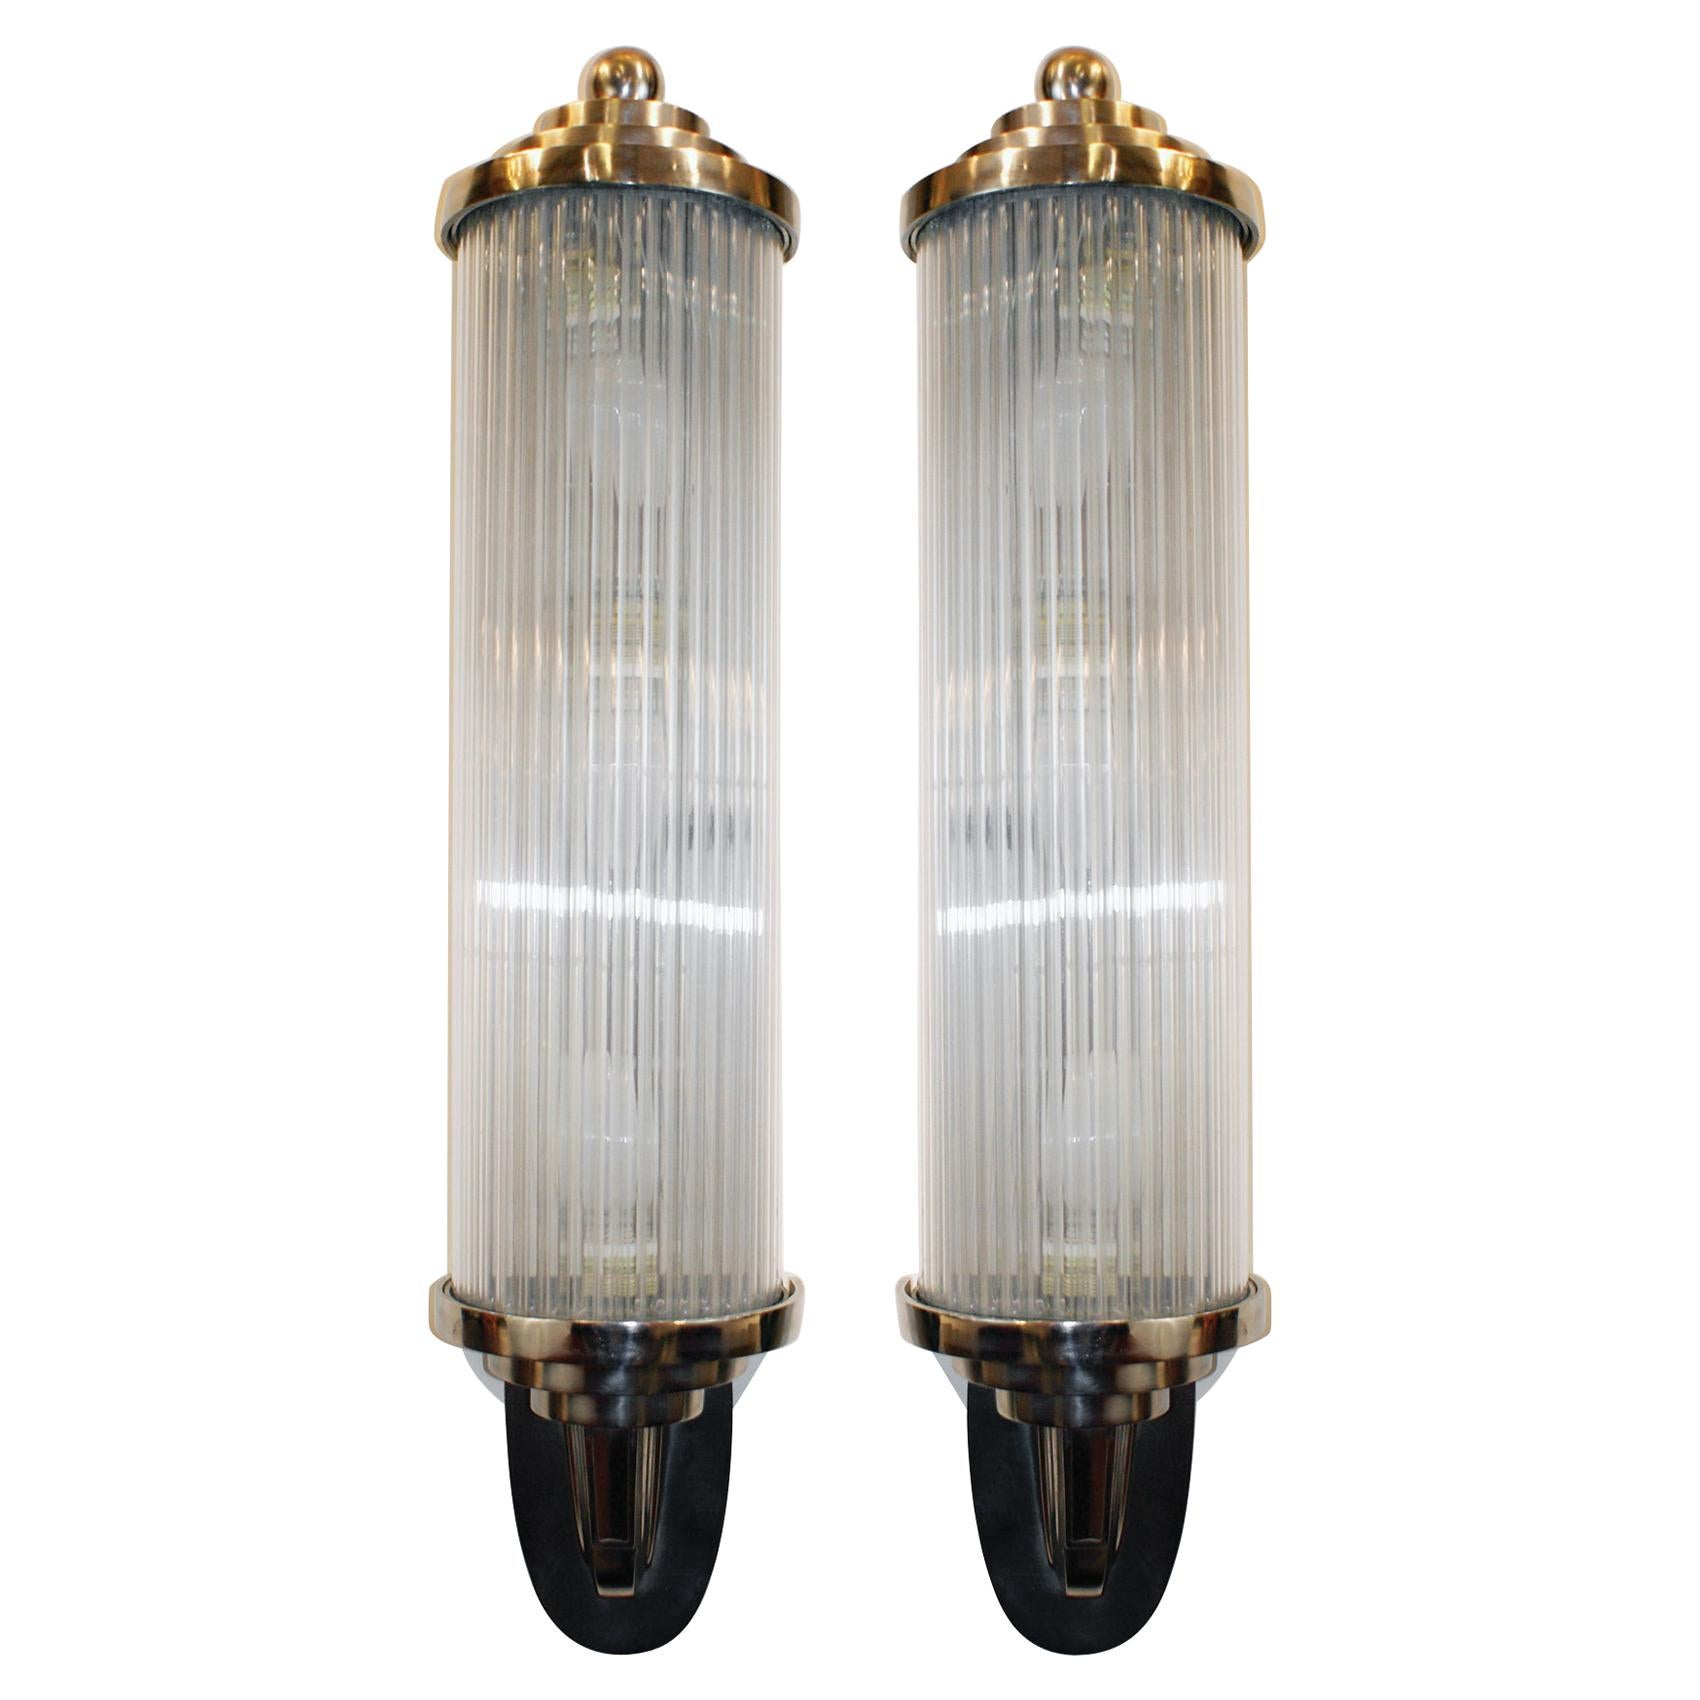 Pair of Modernist French Art Deco Wall Lights Attributed to Petitot